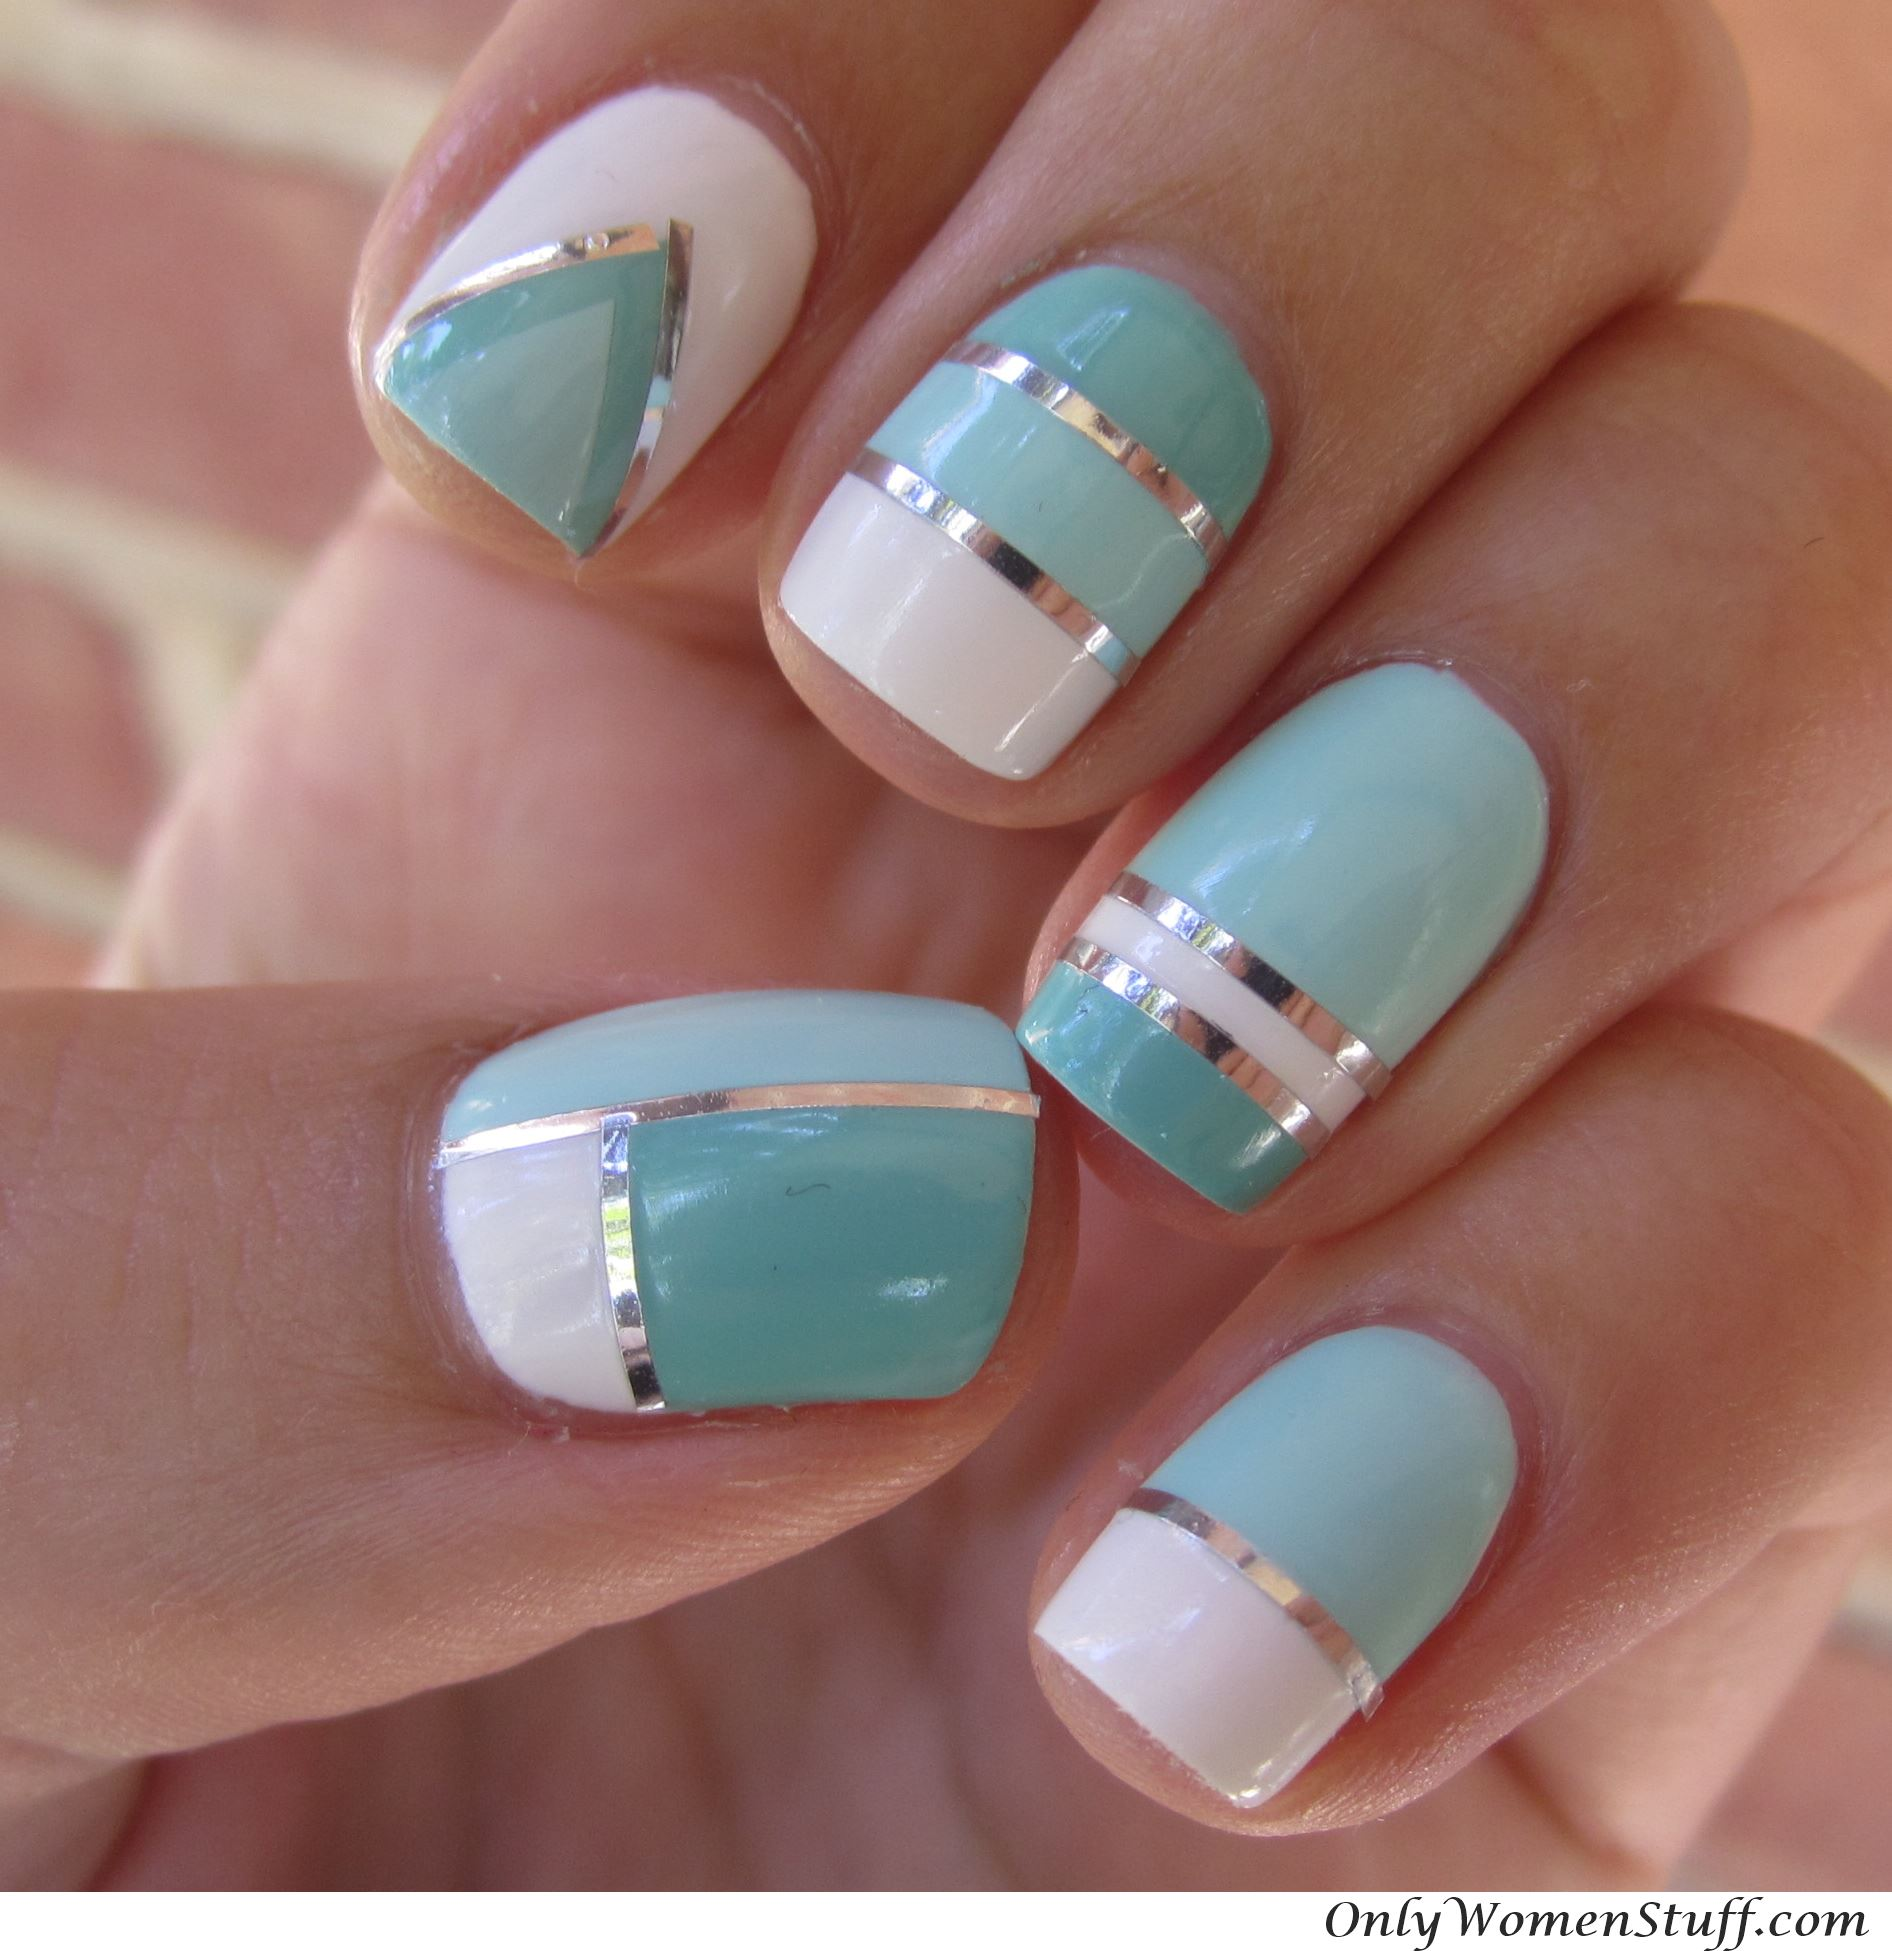 Nail Design Ideas For Short Nails find this pin and more on uas mich easy nail designs for short nails Short Nails Short Nail Art Short Nail Designs Nail Designs For Short Nails